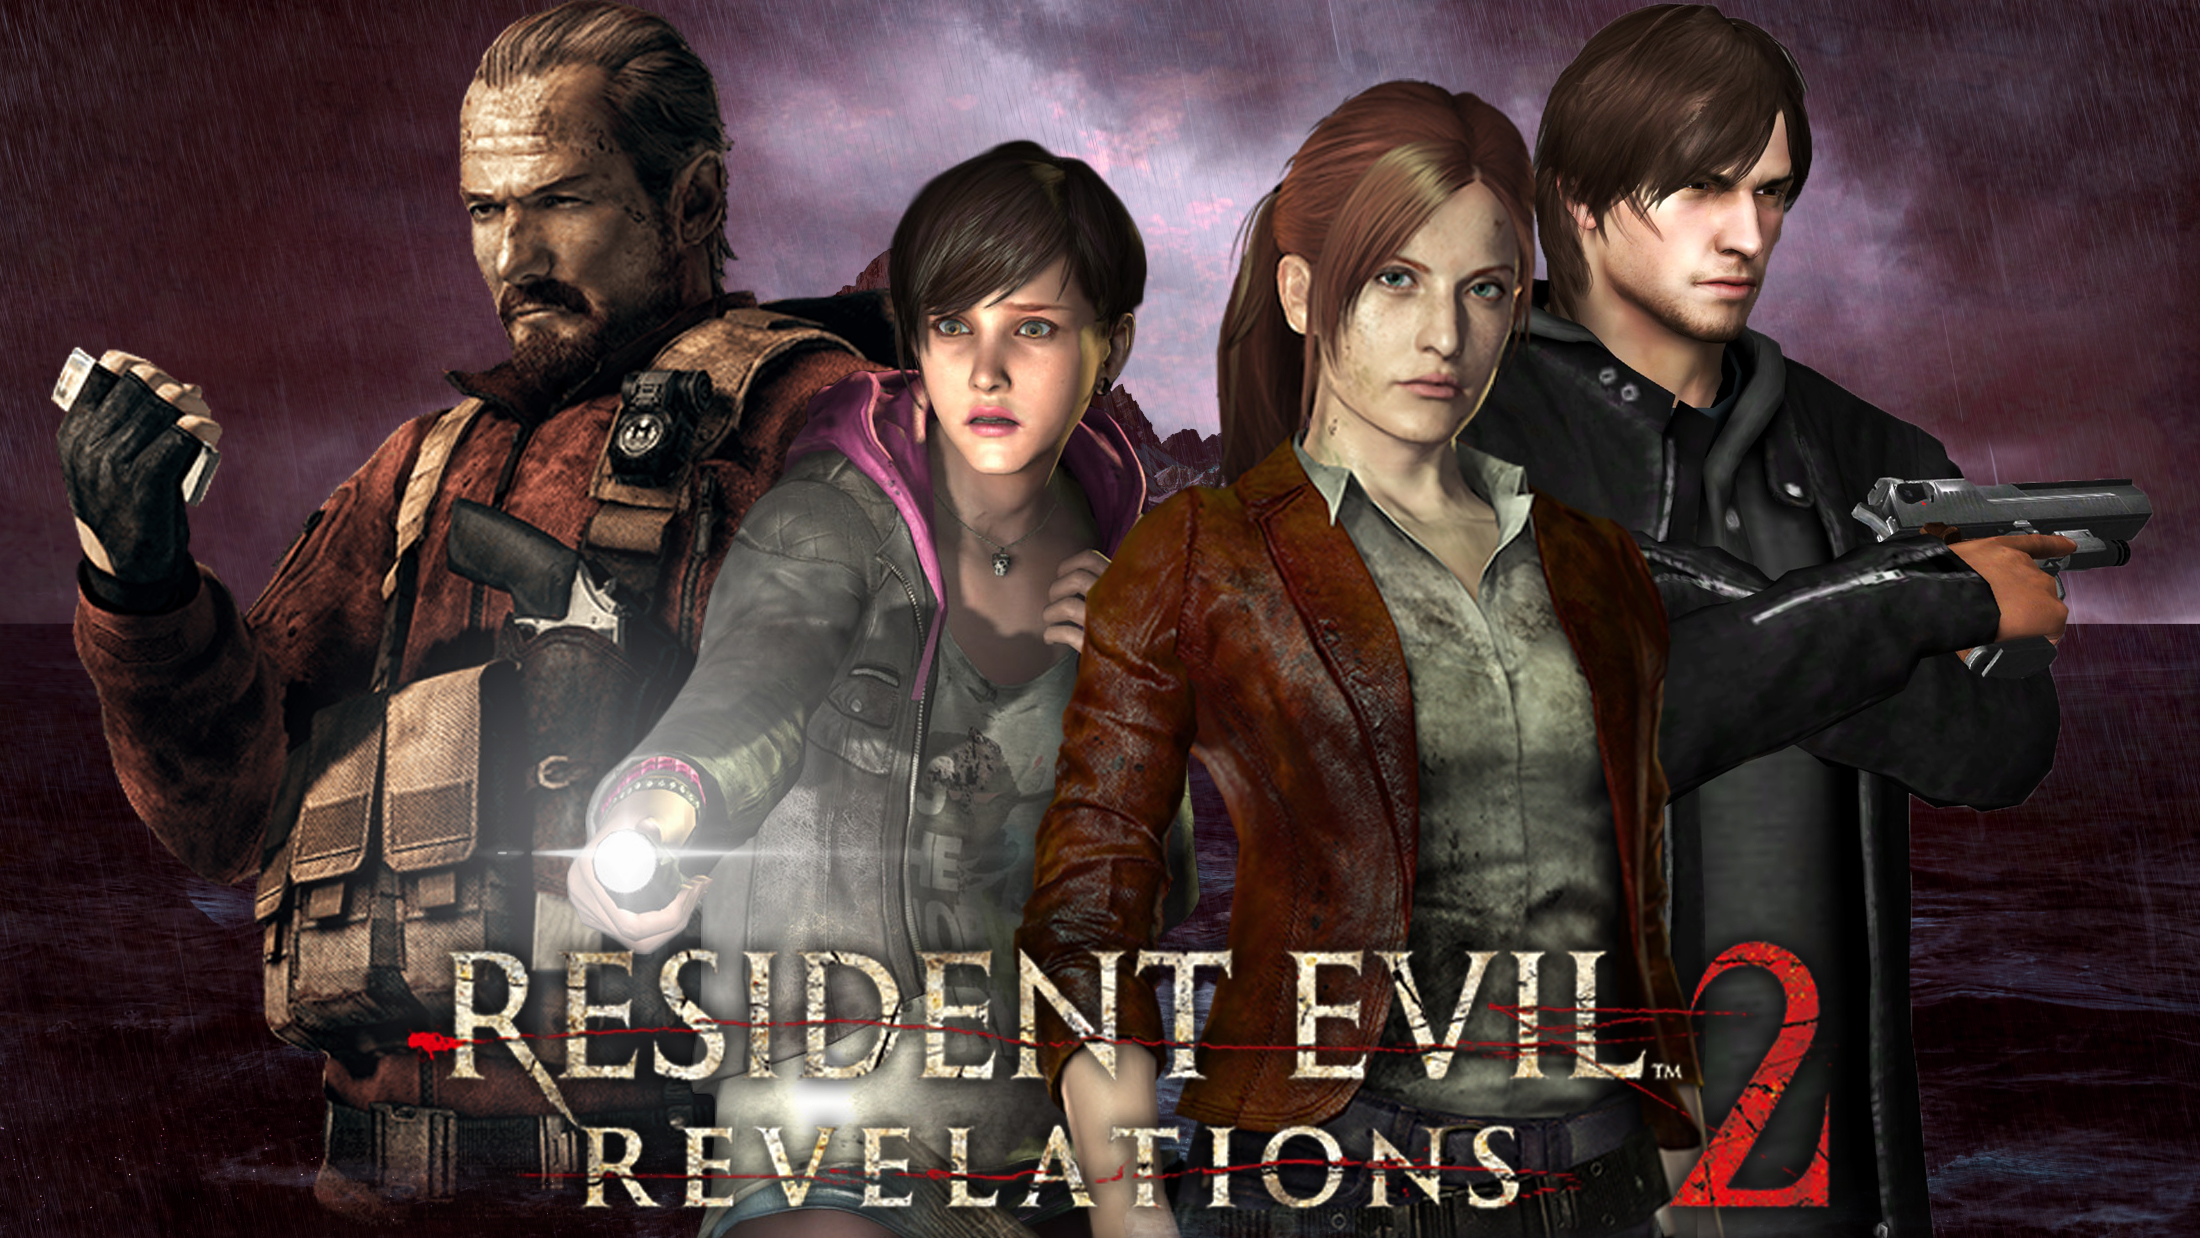 Resident Evil Revelations 2 Desktop Wallpapers Wallpaper Cave